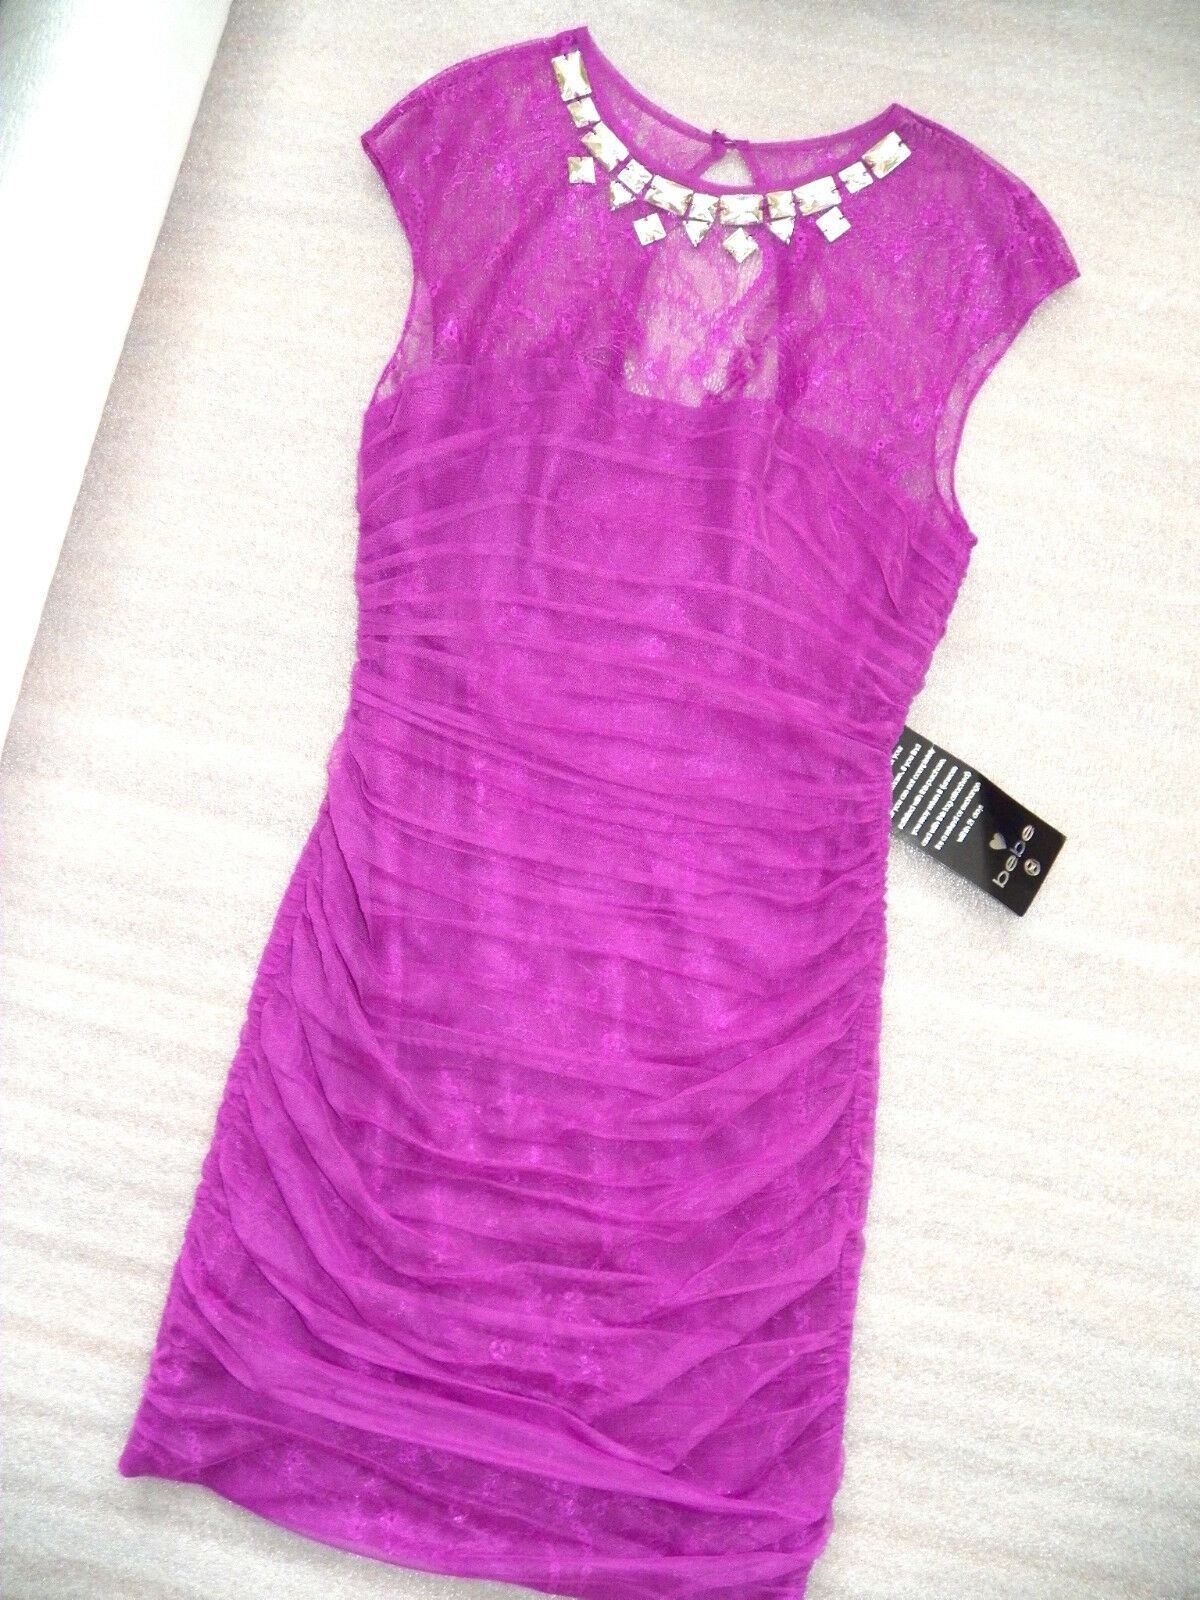 NWT Bebe top crystal lila ruched sheer lace mesh bodycon beaded dress XS 0 2